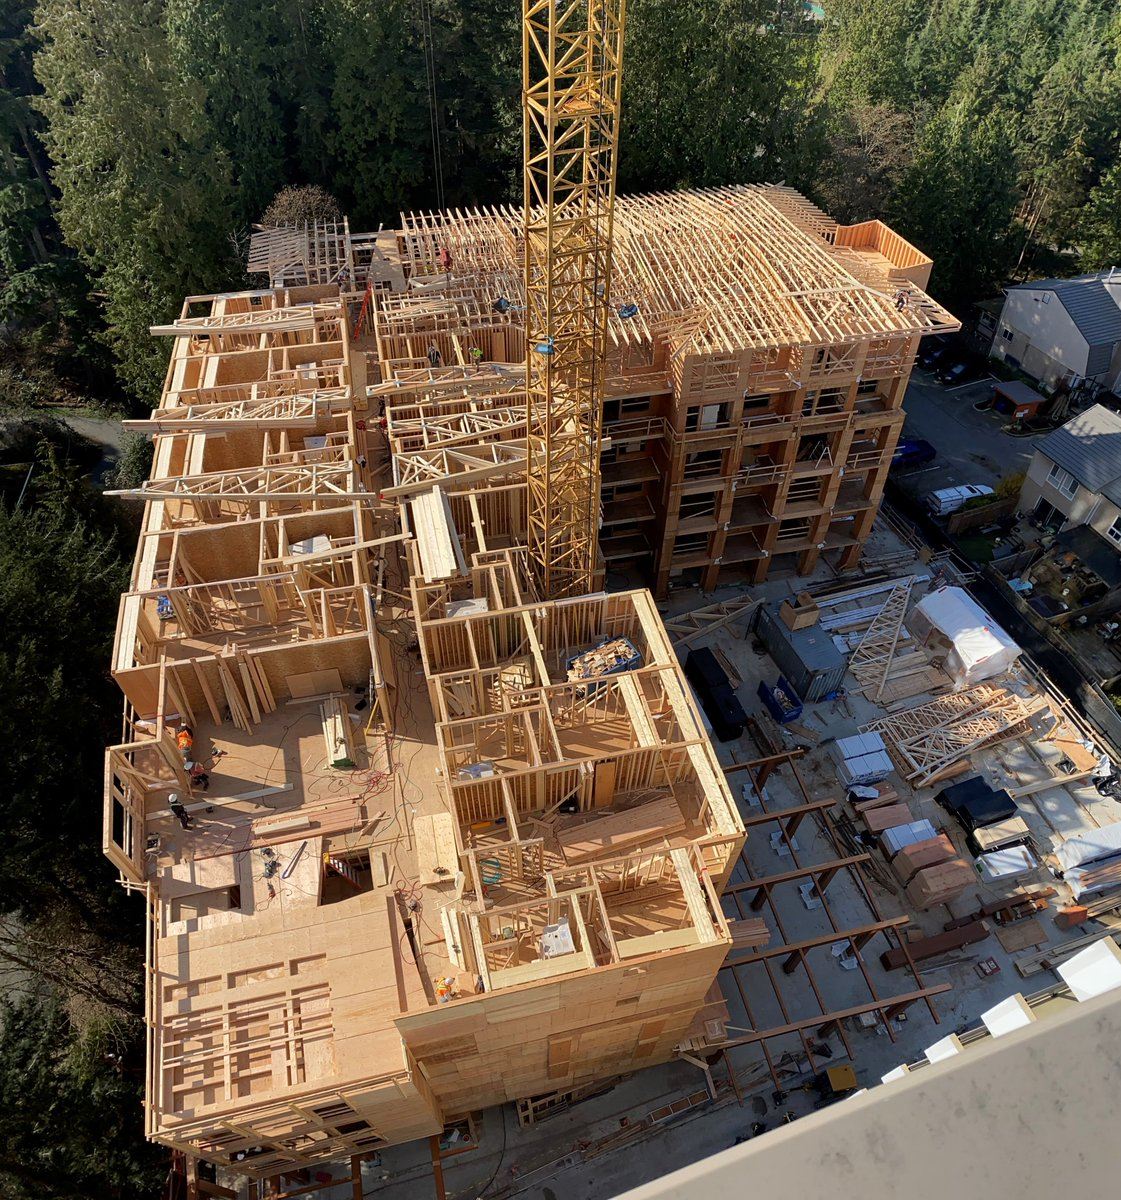 test Twitter Media - The Timber work on our North Kiwanis project is coming along nicely. The 6 story building is now framed up to  L-6 and roof trusses have started. The Tower Renovation is complete and almost ready for move in. #KiwanisNorthShoreHousingSociety https://t.co/HZAsR4iWNx